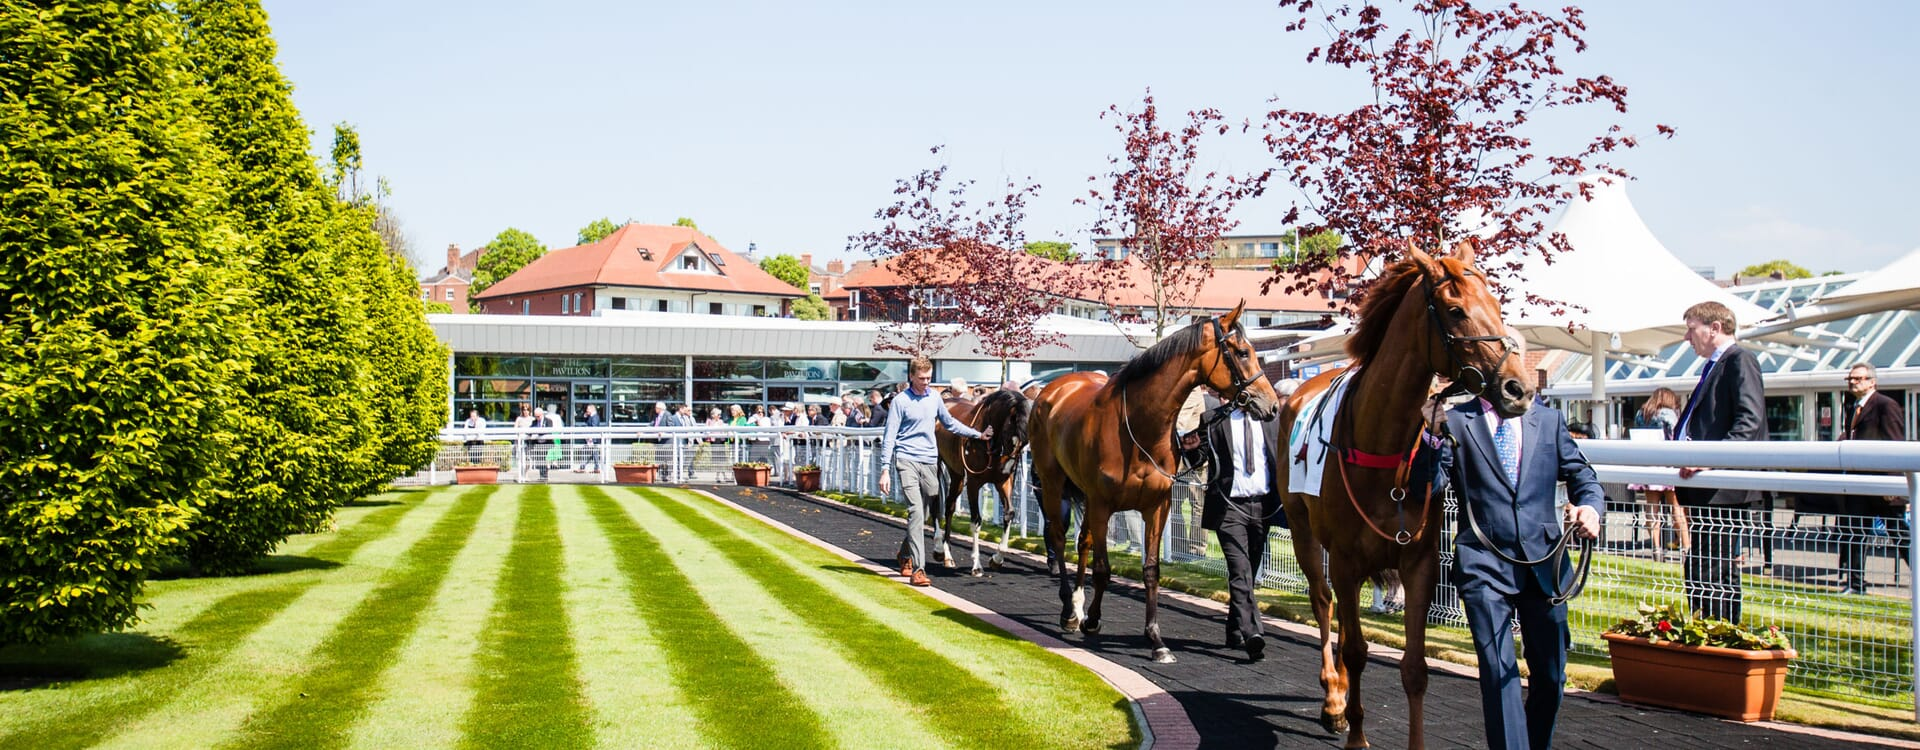 Chester Horse Racing Race Course Corporate Sports Hospitality